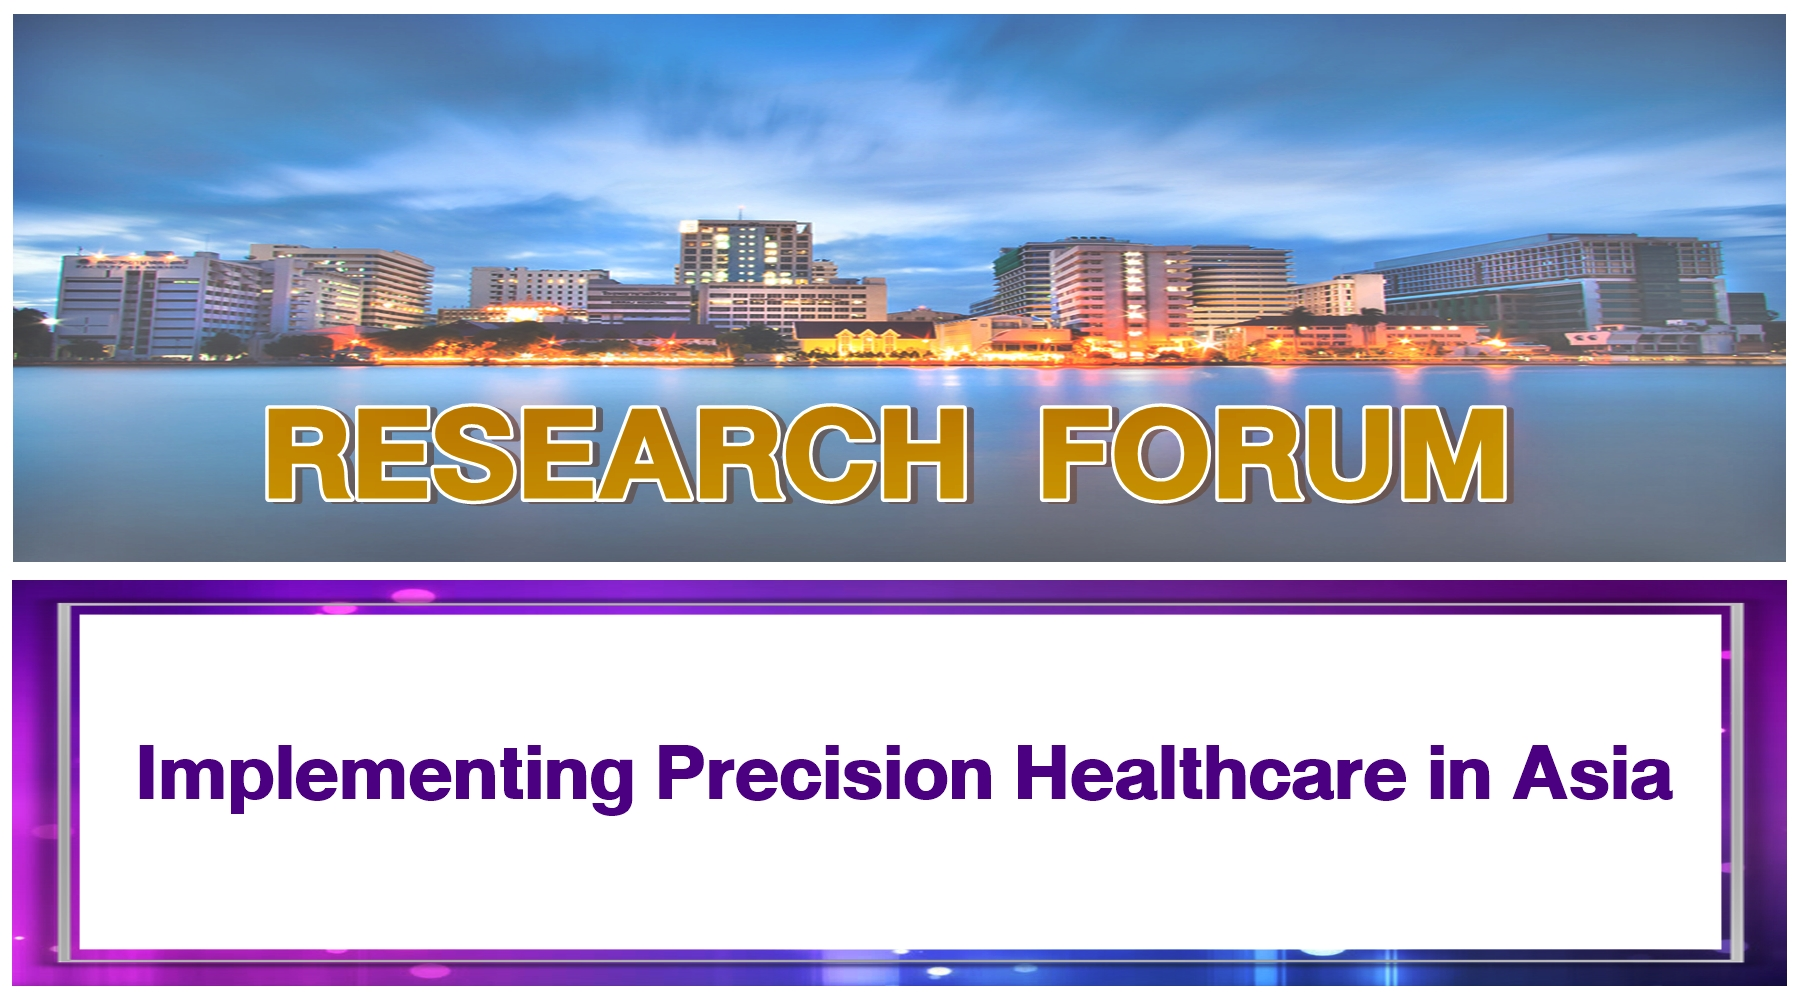 Implementing Precision Healthcare in Asia